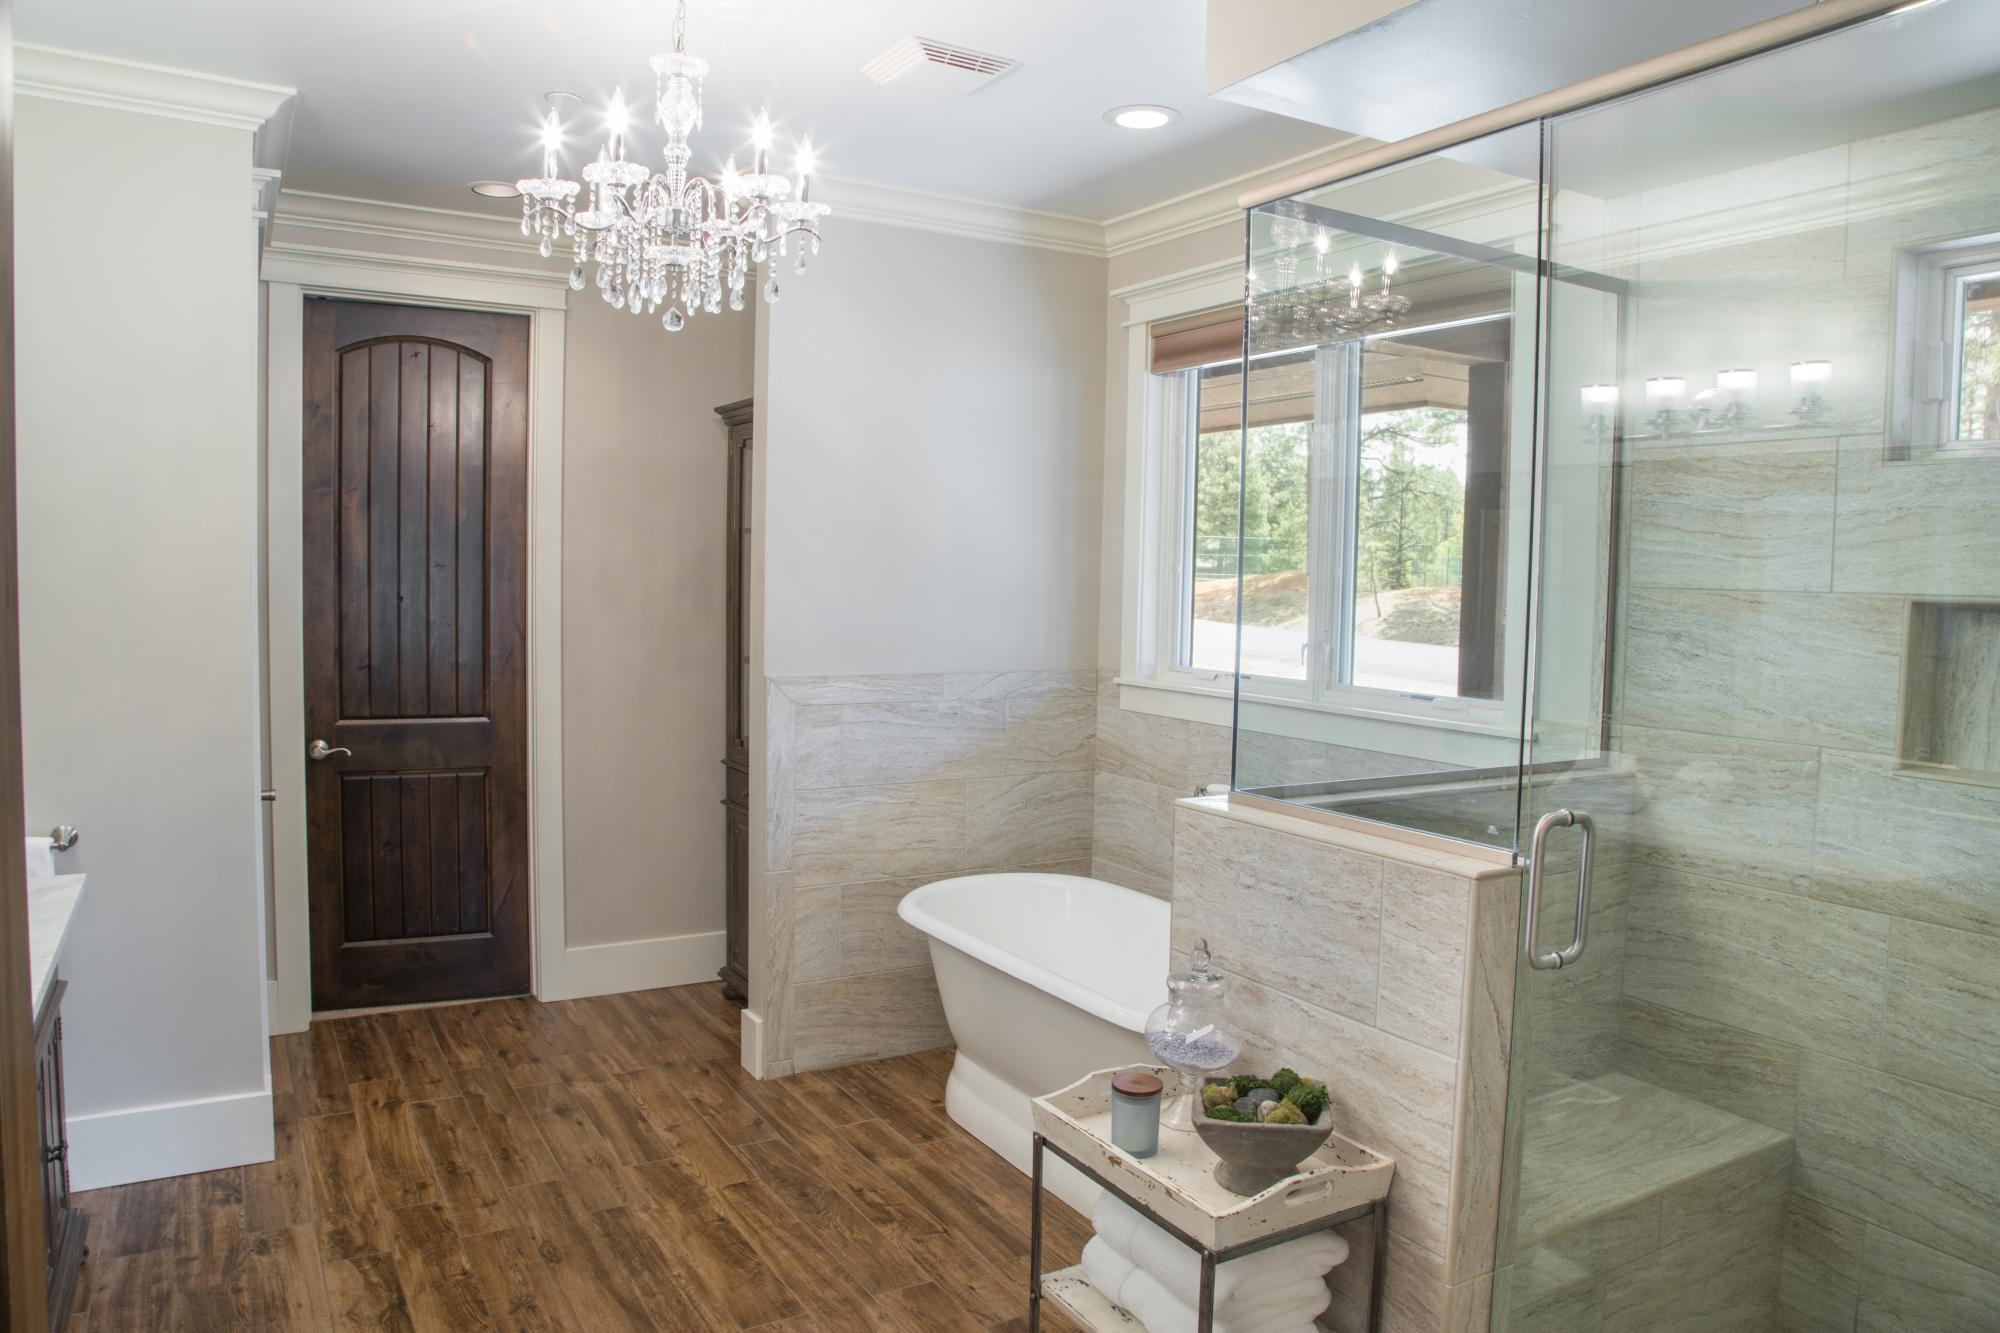 Bathroom featured in the Flagstaff Ranch Plan 3405 By Capstone Homes in Flagstaff, AZ